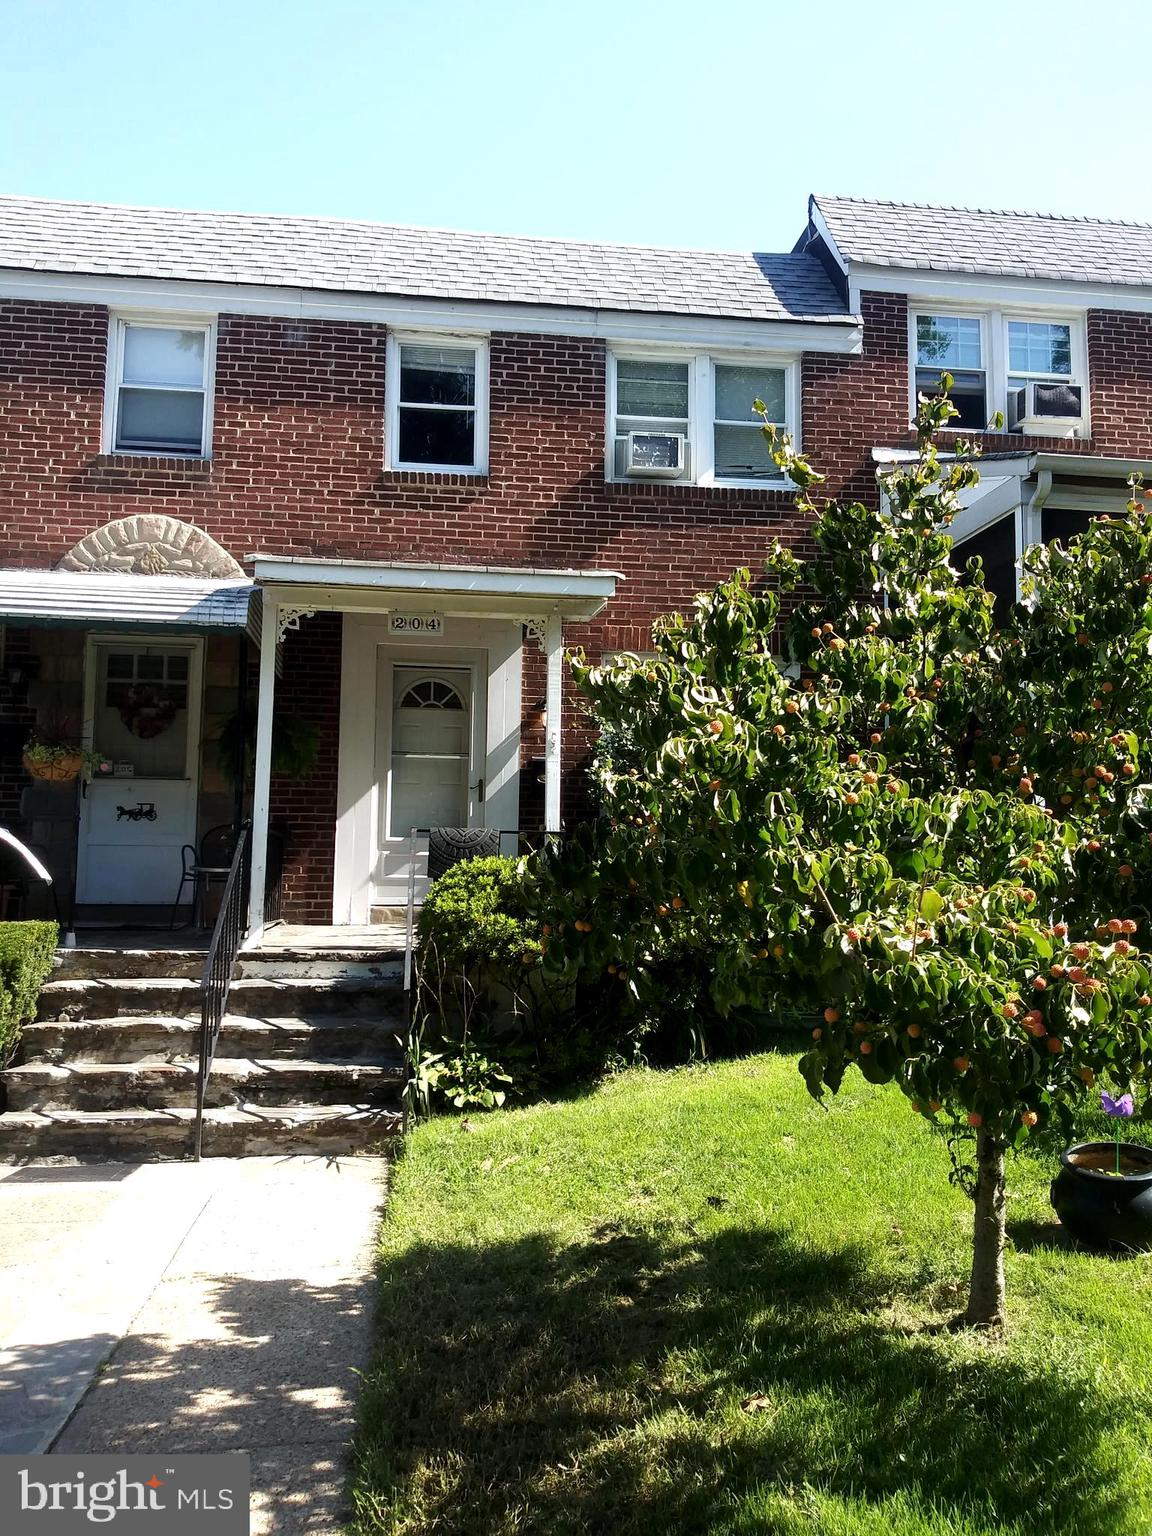 REDUCED  -    3 BEDROOM  1-1/2 BATH BRICK TOWNHOUSE  WITH LARGE COVERED ADDITION OFF KITCHEN.  NOTE: WHEN BACK PORCH WAS ADDED THEY ALSO EXTENDED THE BASEMENT AREA.    WOOD FLOORS,  AND NEW CARPETING, FRESHLY PAINTED, 2+ CAR PARKING PAD IN REAR,  FULL BASEMENT HAS WALK OUT TO REAR YARD AND 1/2 BATH .